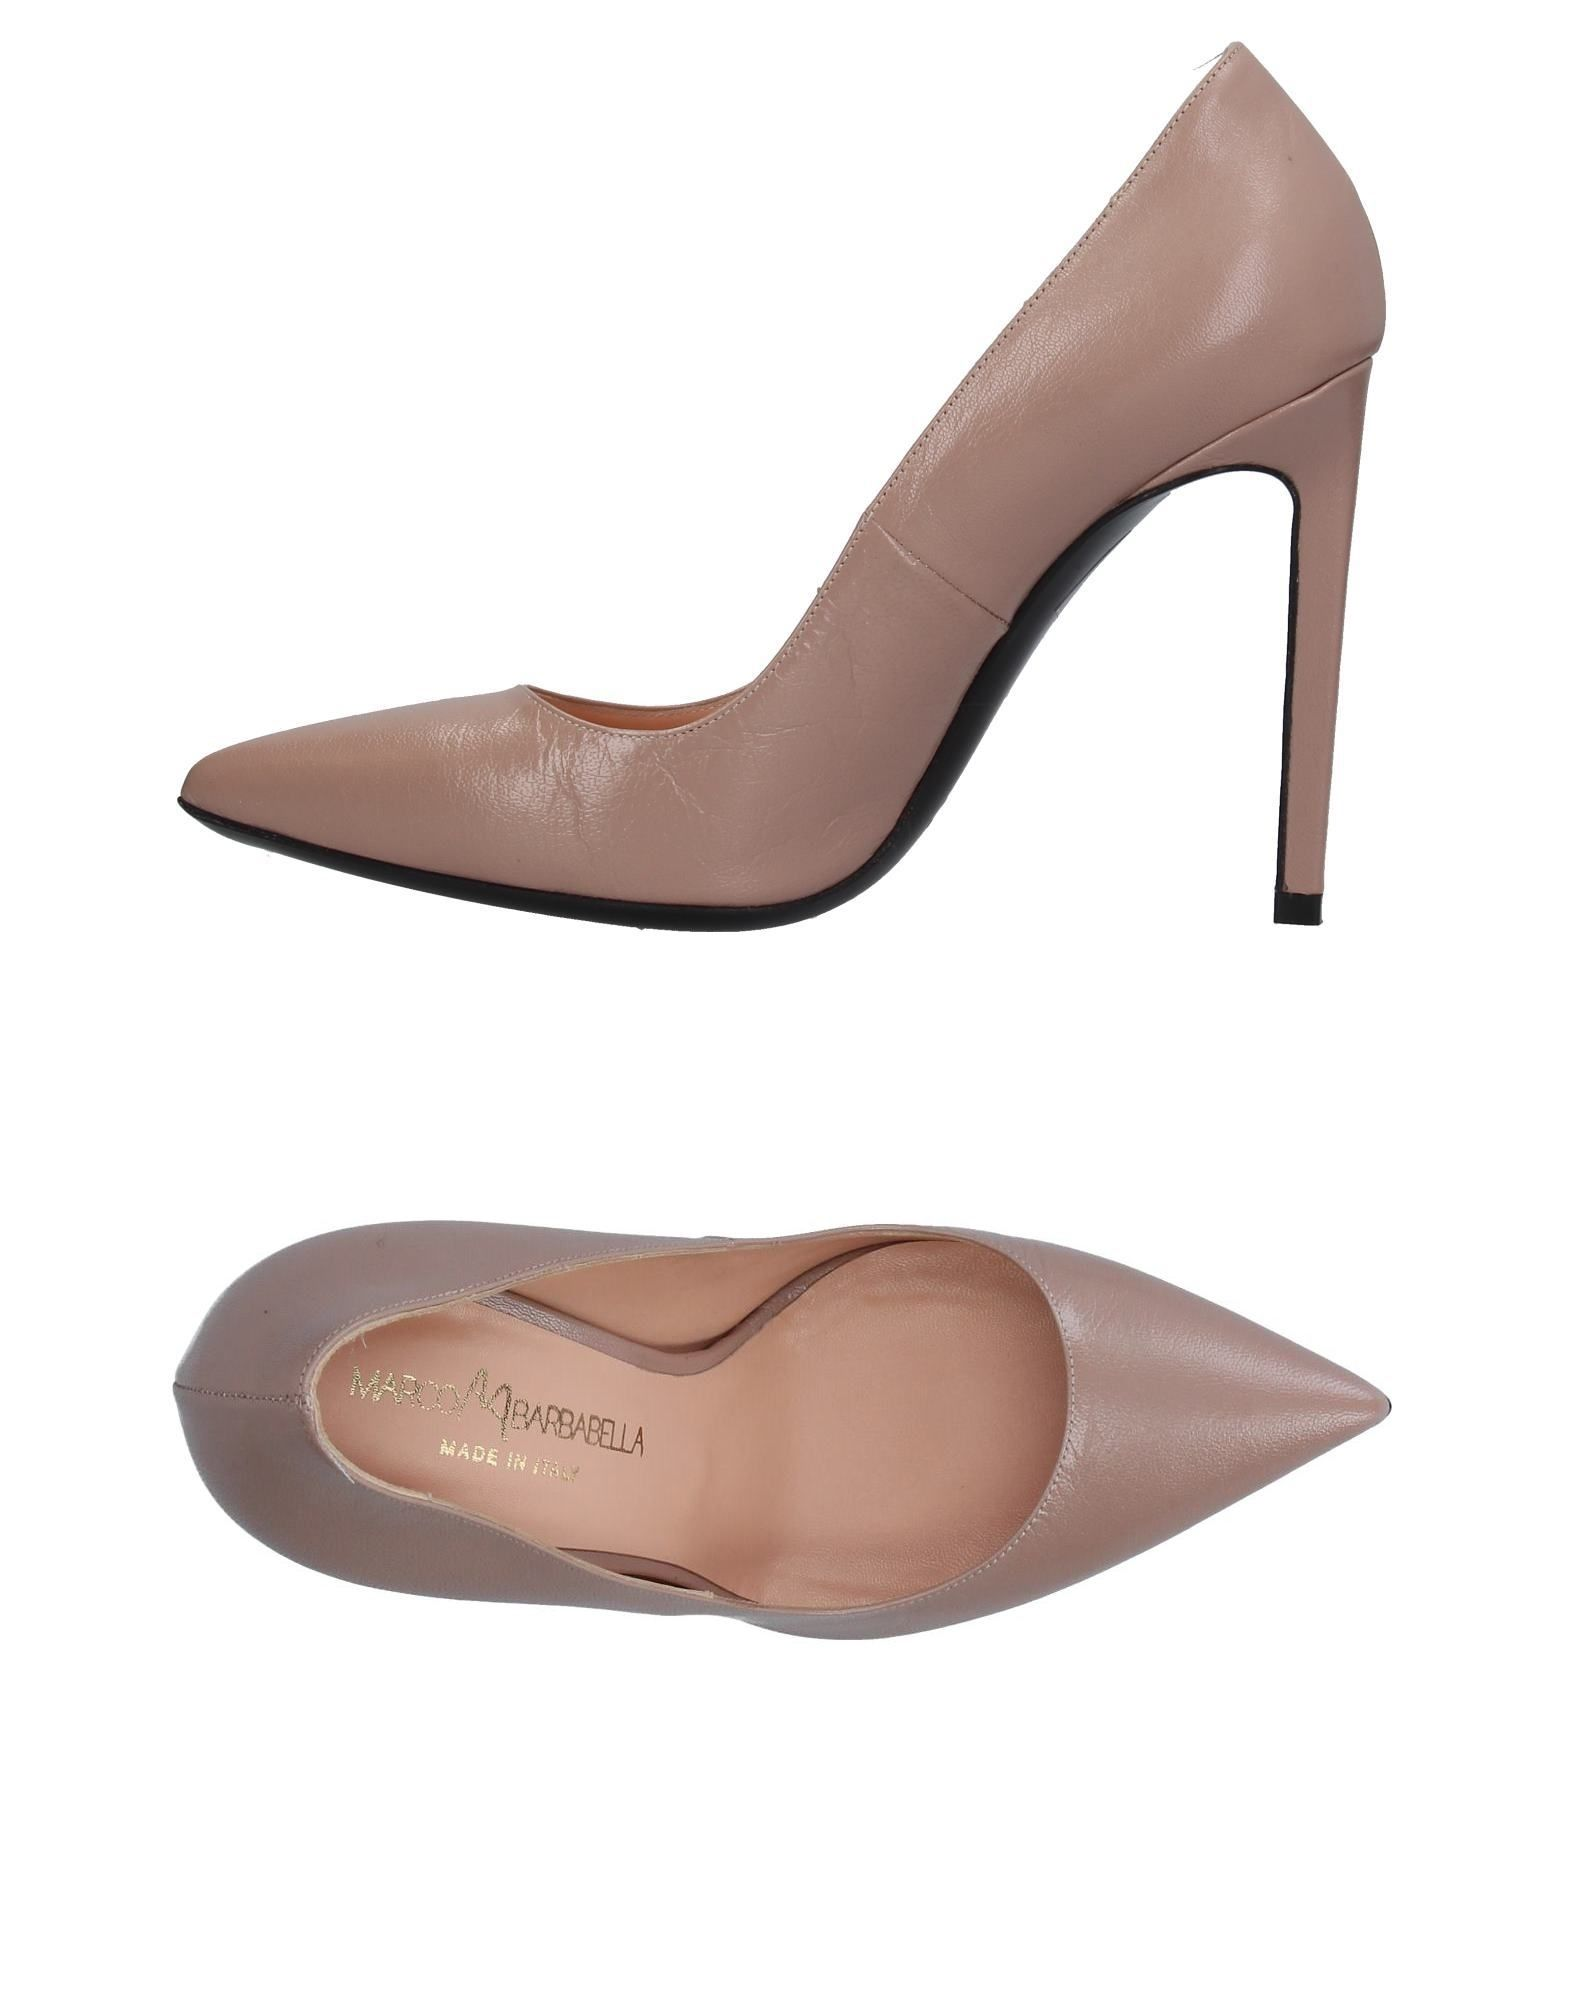 Stilvolle billige Schuhe Marco Barbabella Pumps Damen  11341646KS